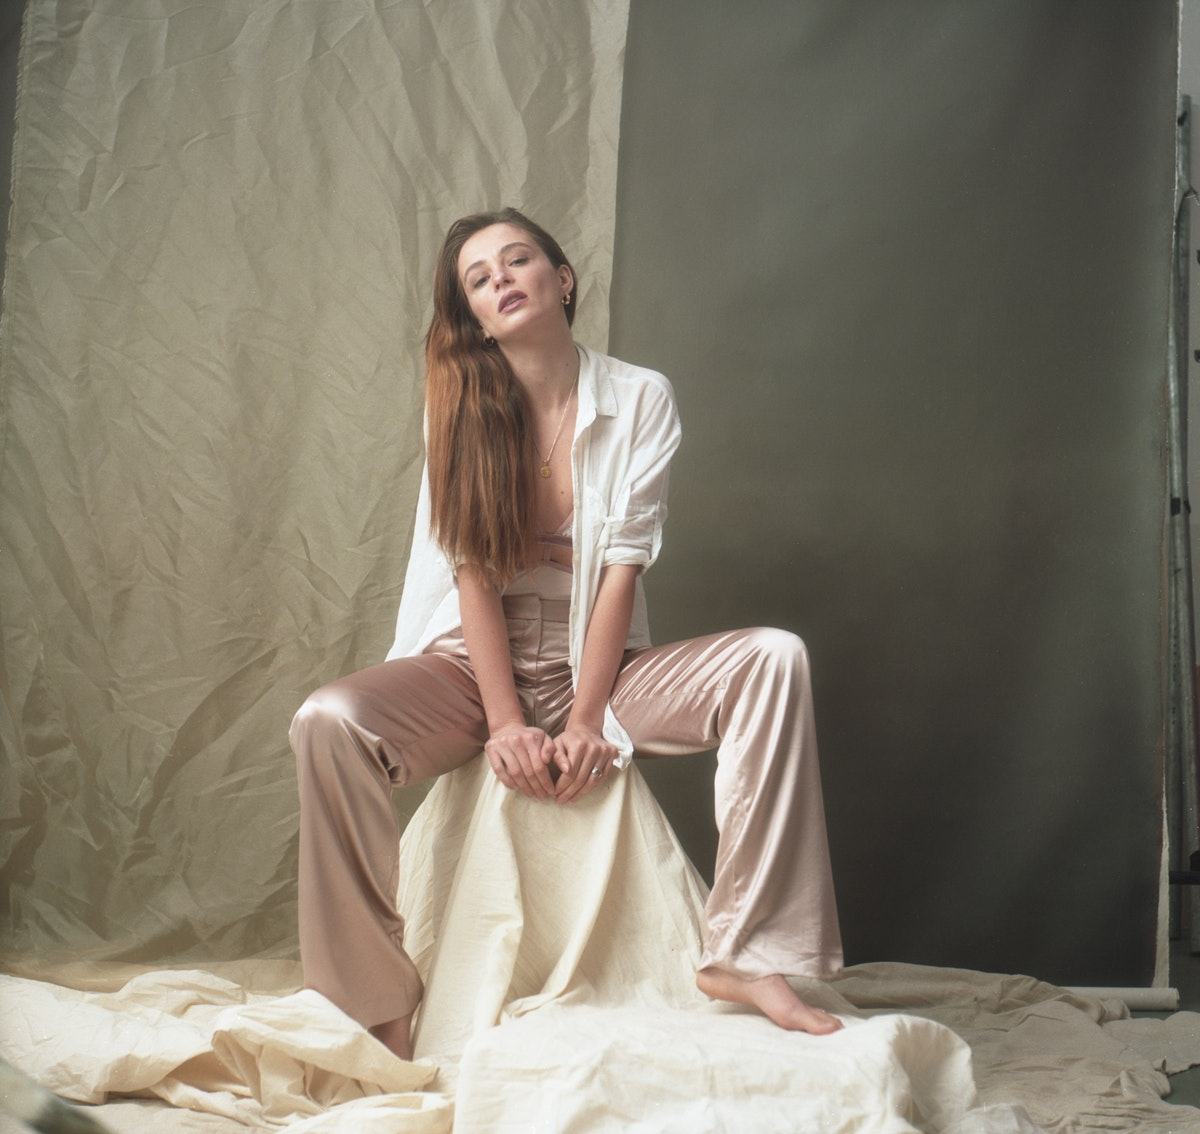 TESS PORTRAITS - IN OUR SKIN